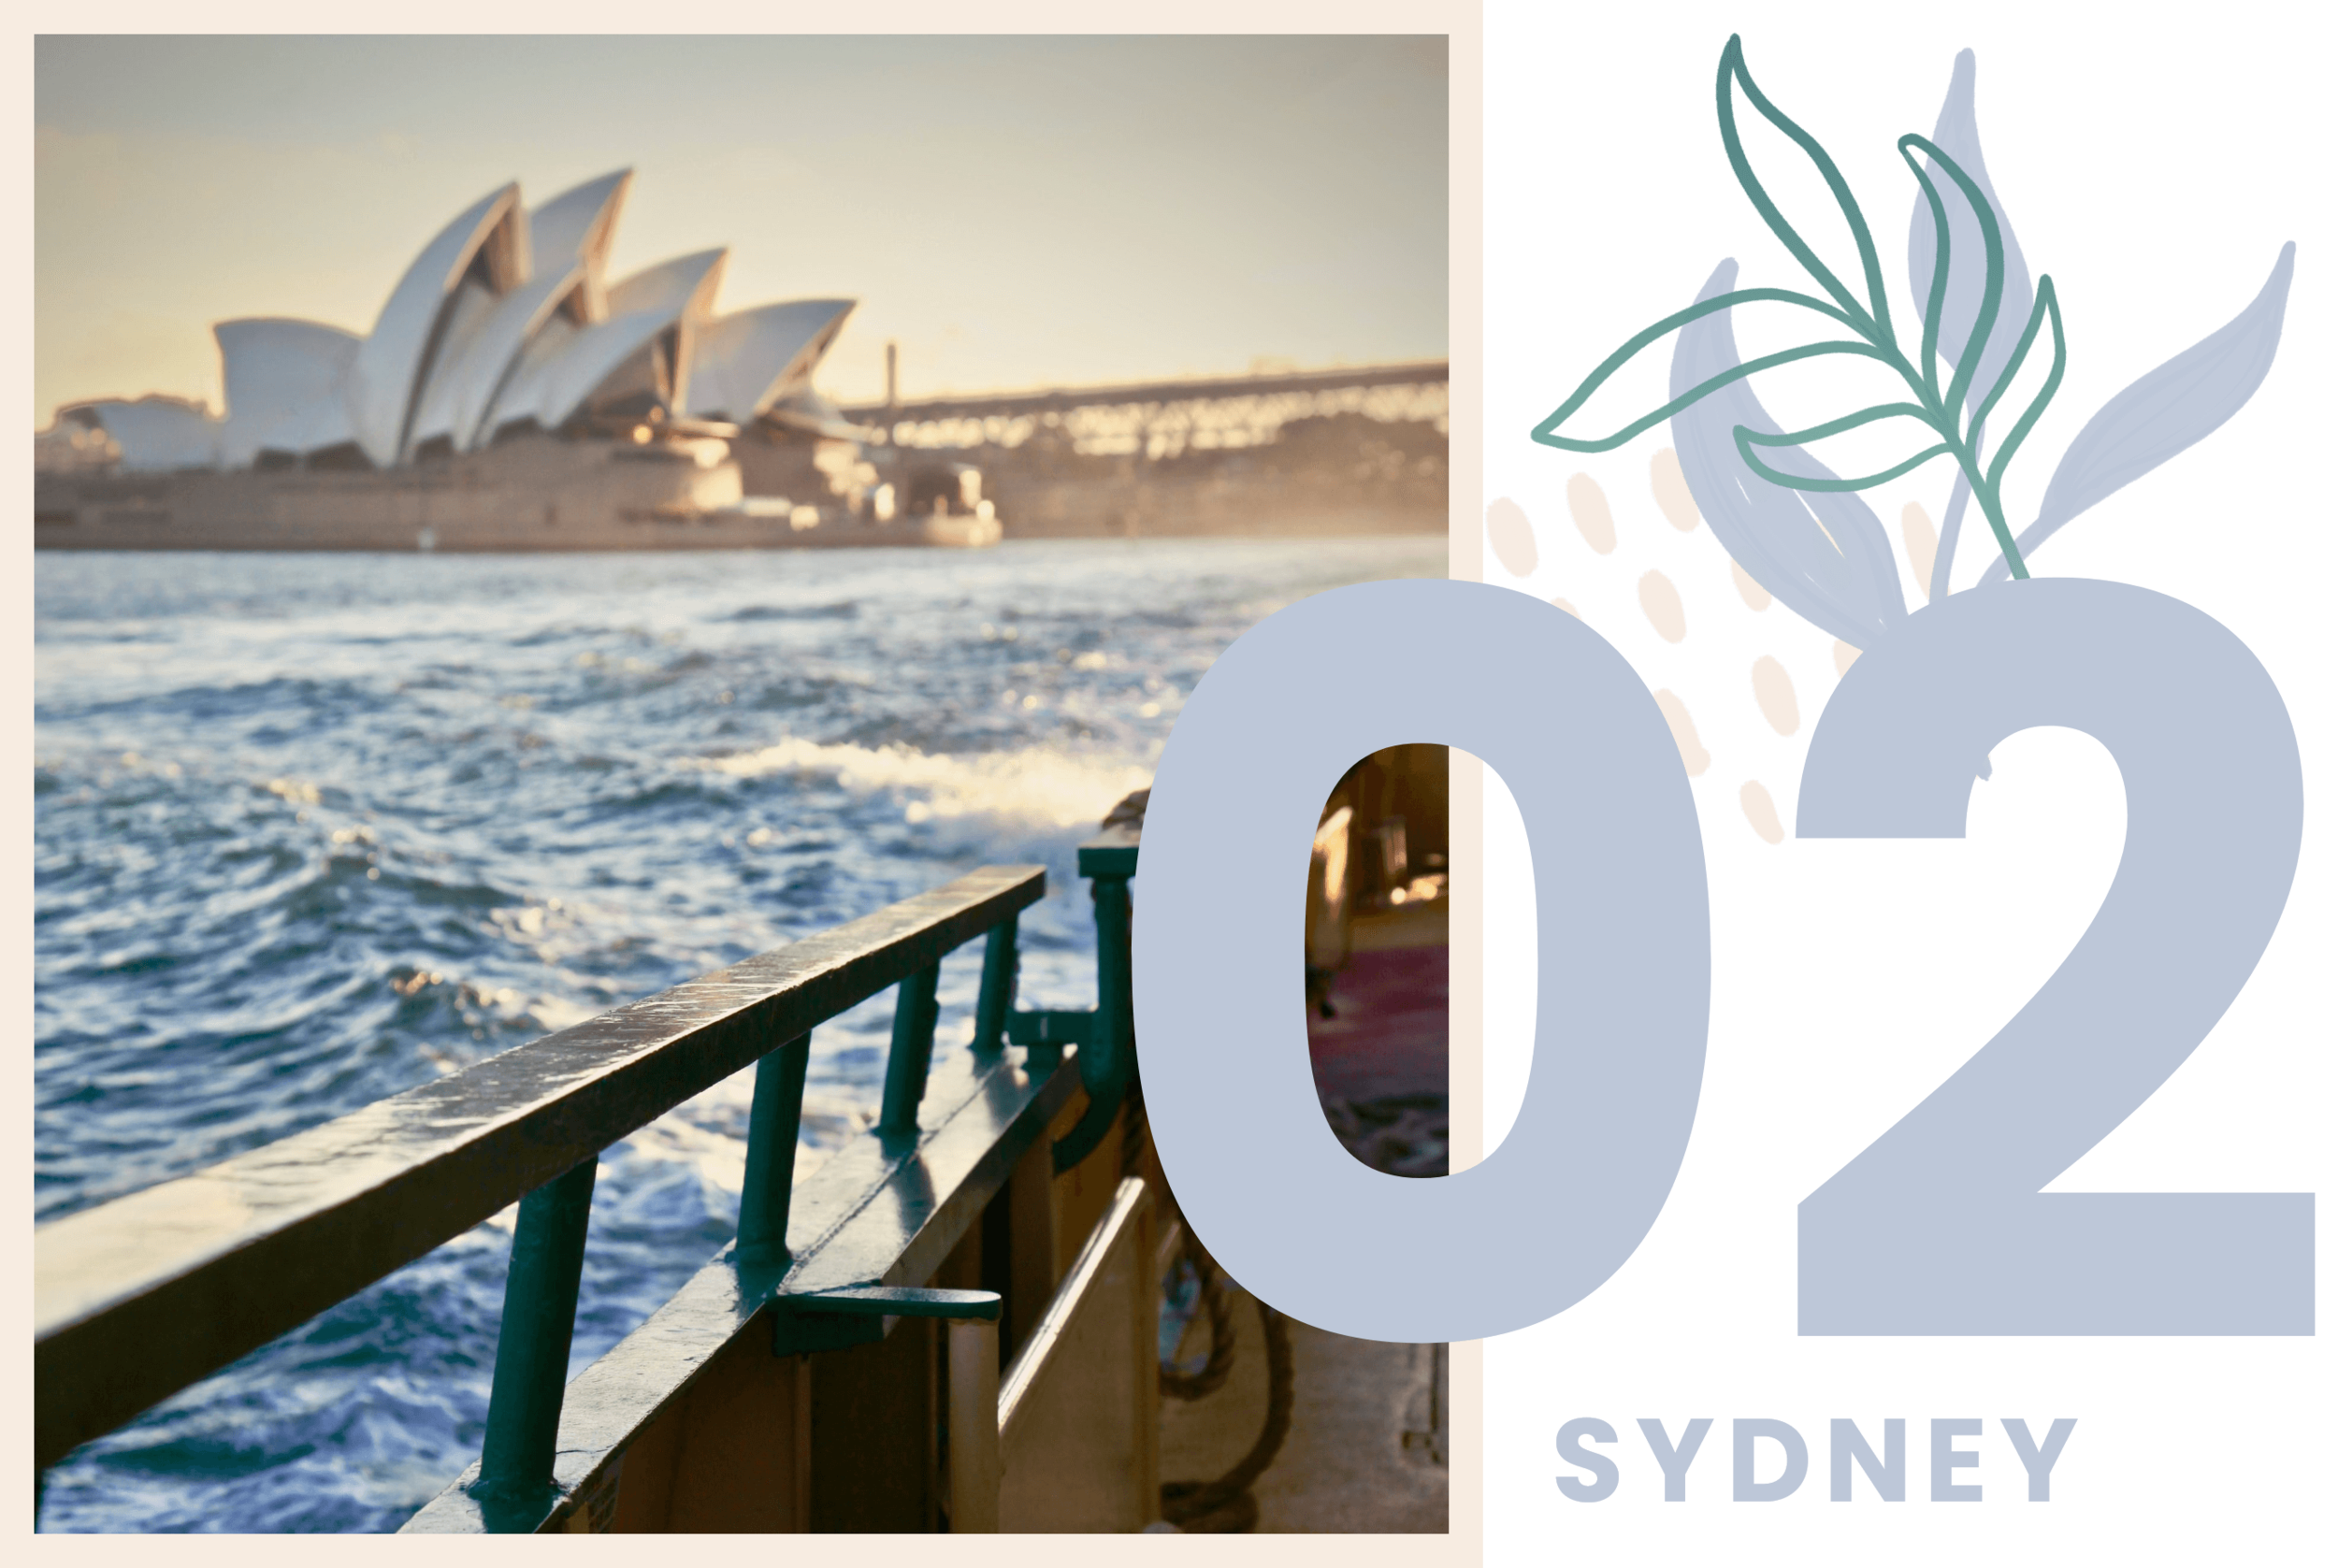 Let's get local:Discover Sydney - From the mountains to the coast, explore the best Sydney hikes and day trips.FIND YOUR NEXT WEEKEND ADVENTURE →